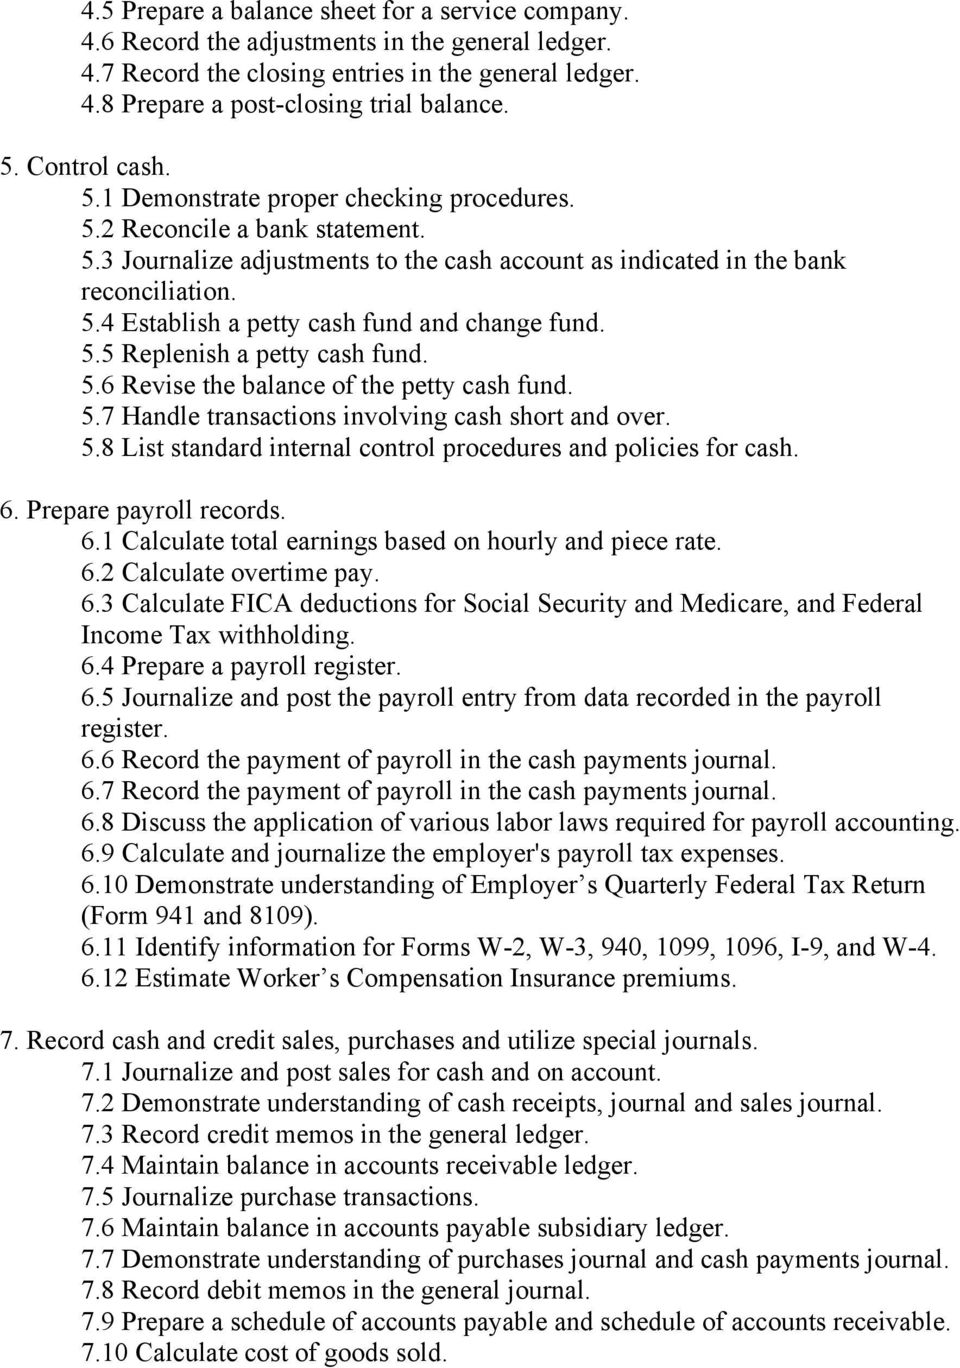 5.5 Replenish a petty cash fund. 5.6 Revise the balance of the petty cash fund. 5.7 Handle transactions involving cash short and over. 5.8 List standard internal control procedures and policies for cash.